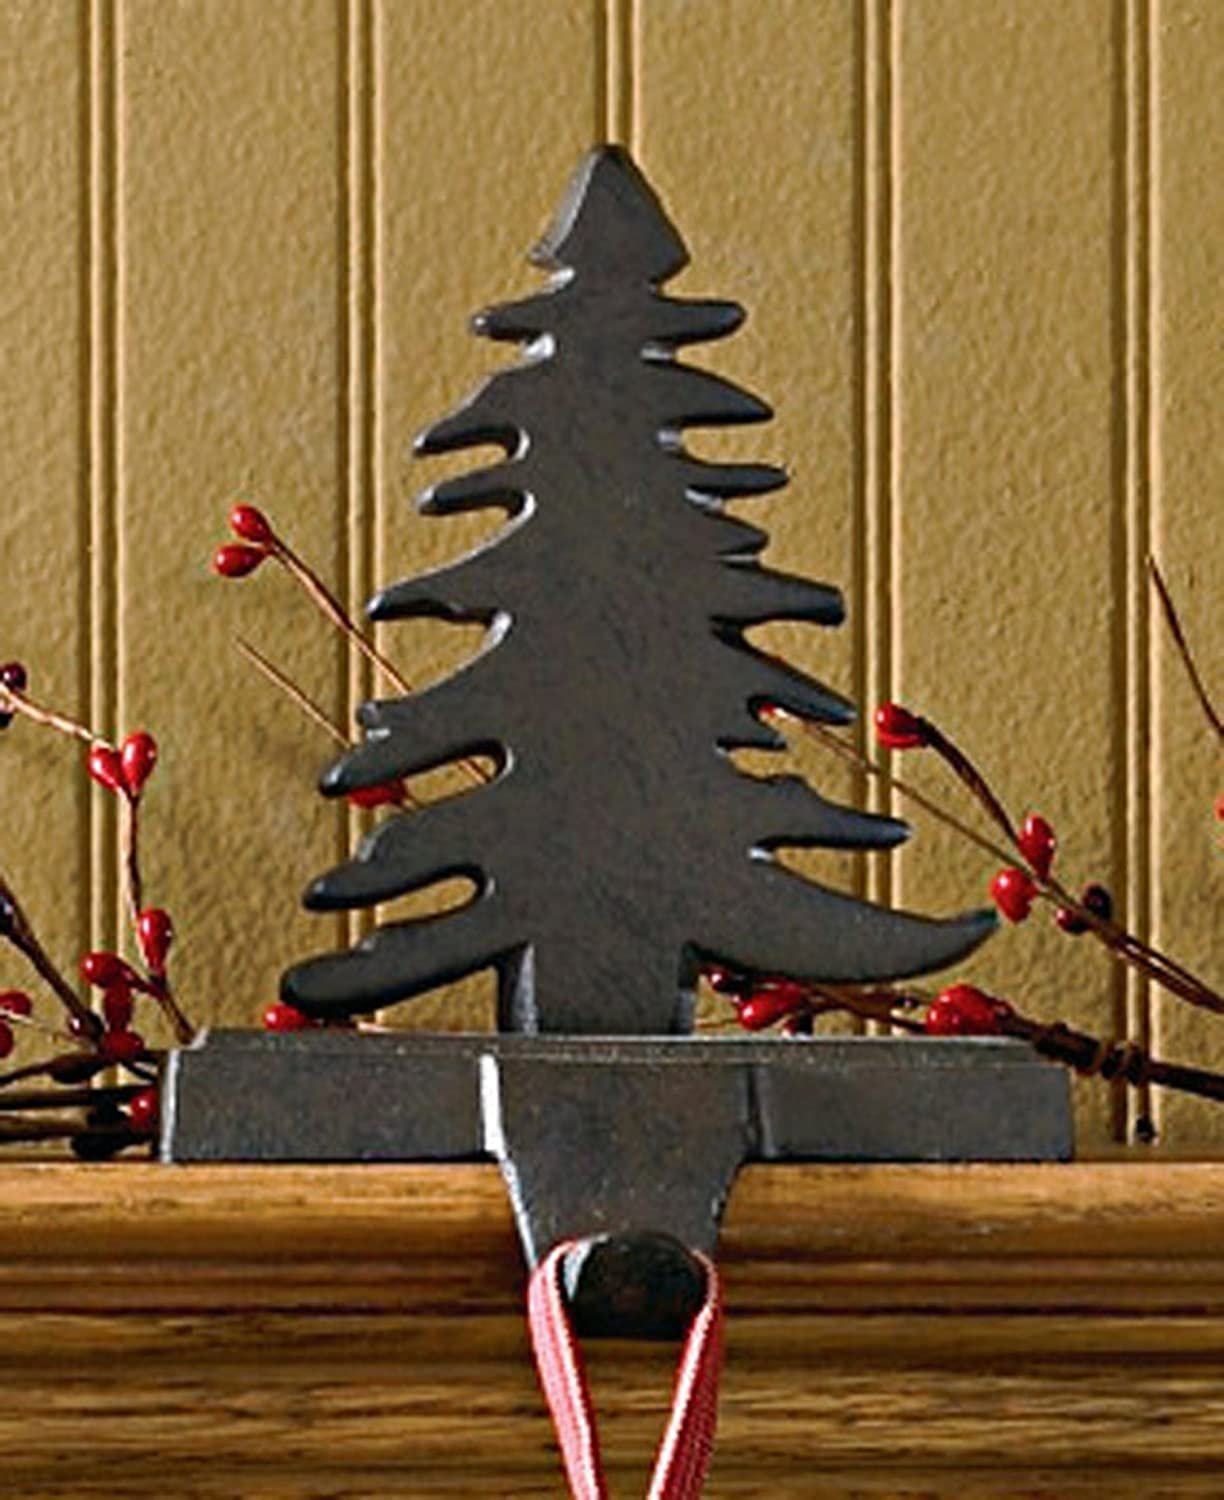 amazoncom park designs iron christmas stocking hanger fir tree kitchen dining - Iron Christmas Tree